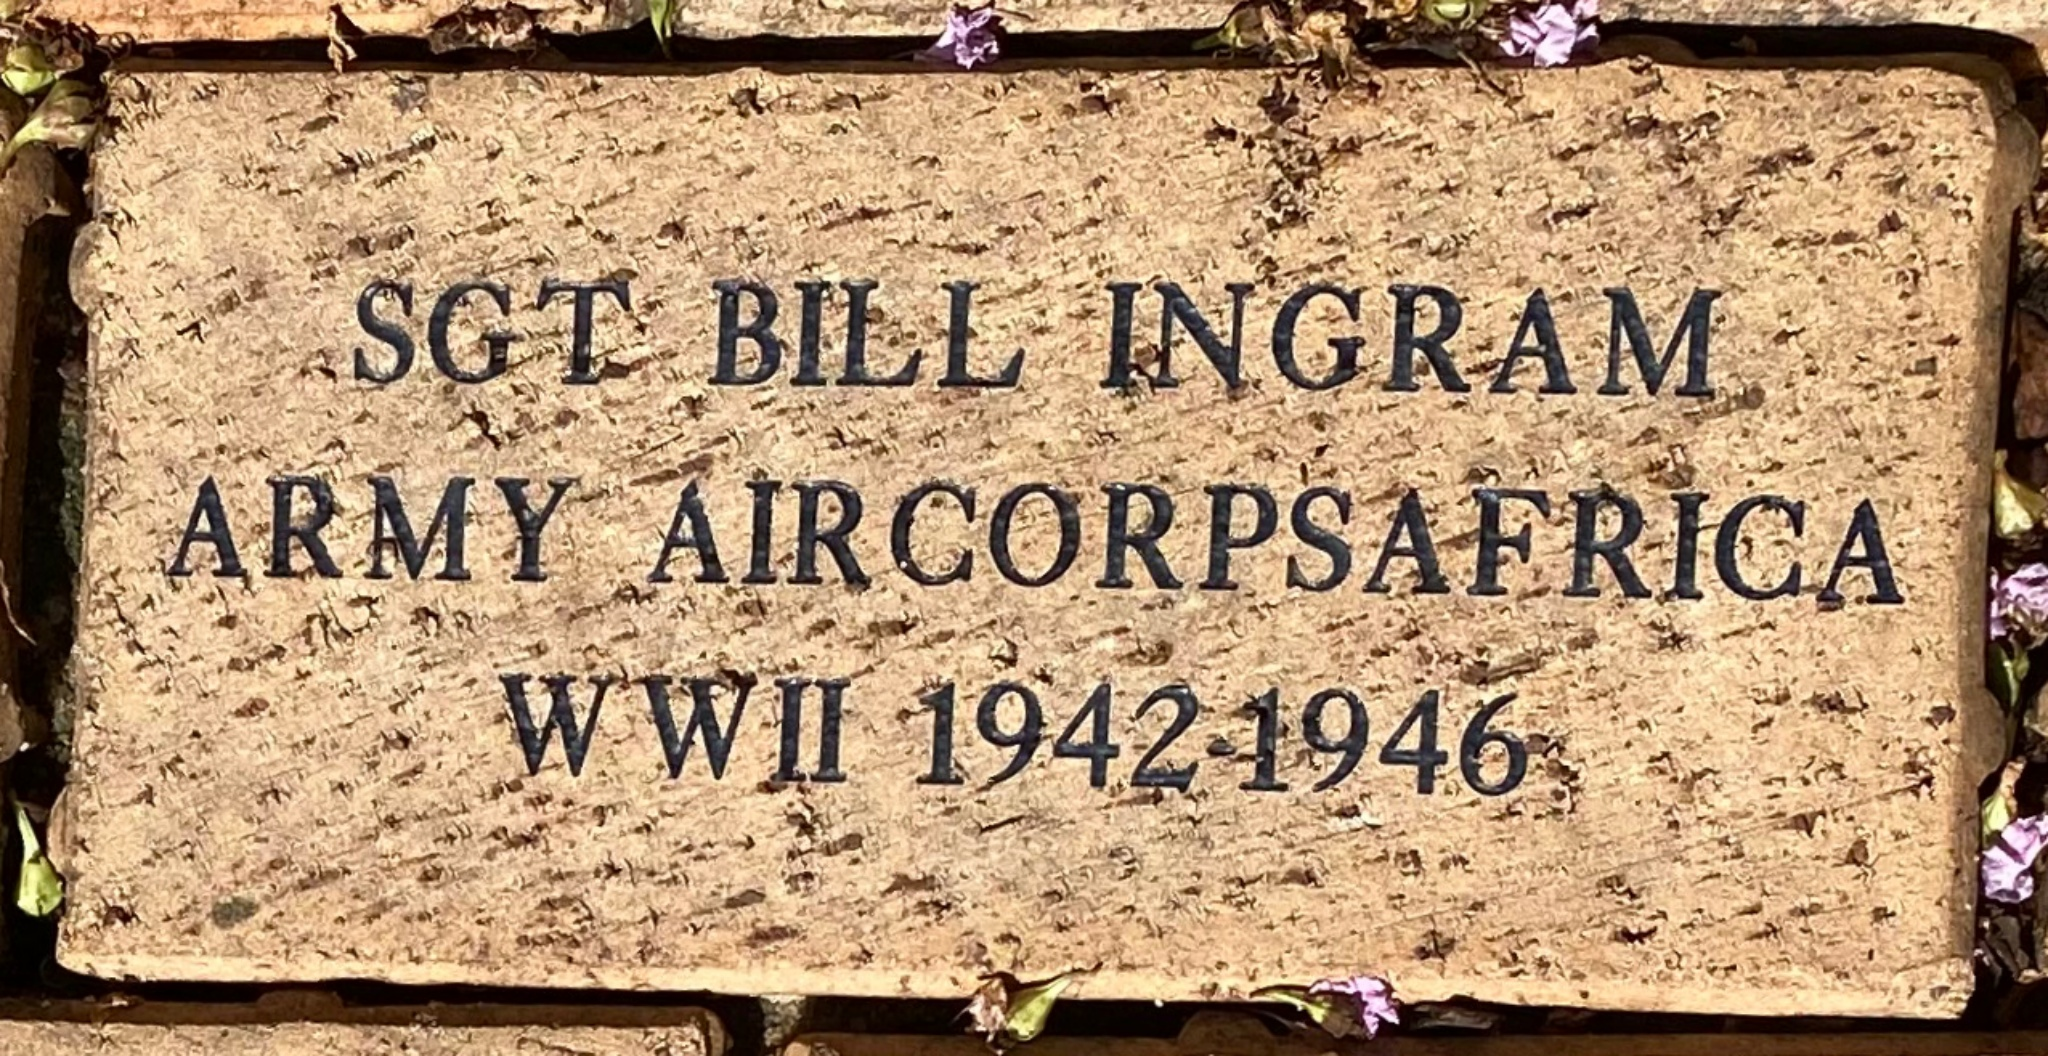 SGT BILL INGRAM ARMY AIRCORPSAFRICA WWII 1942-1946